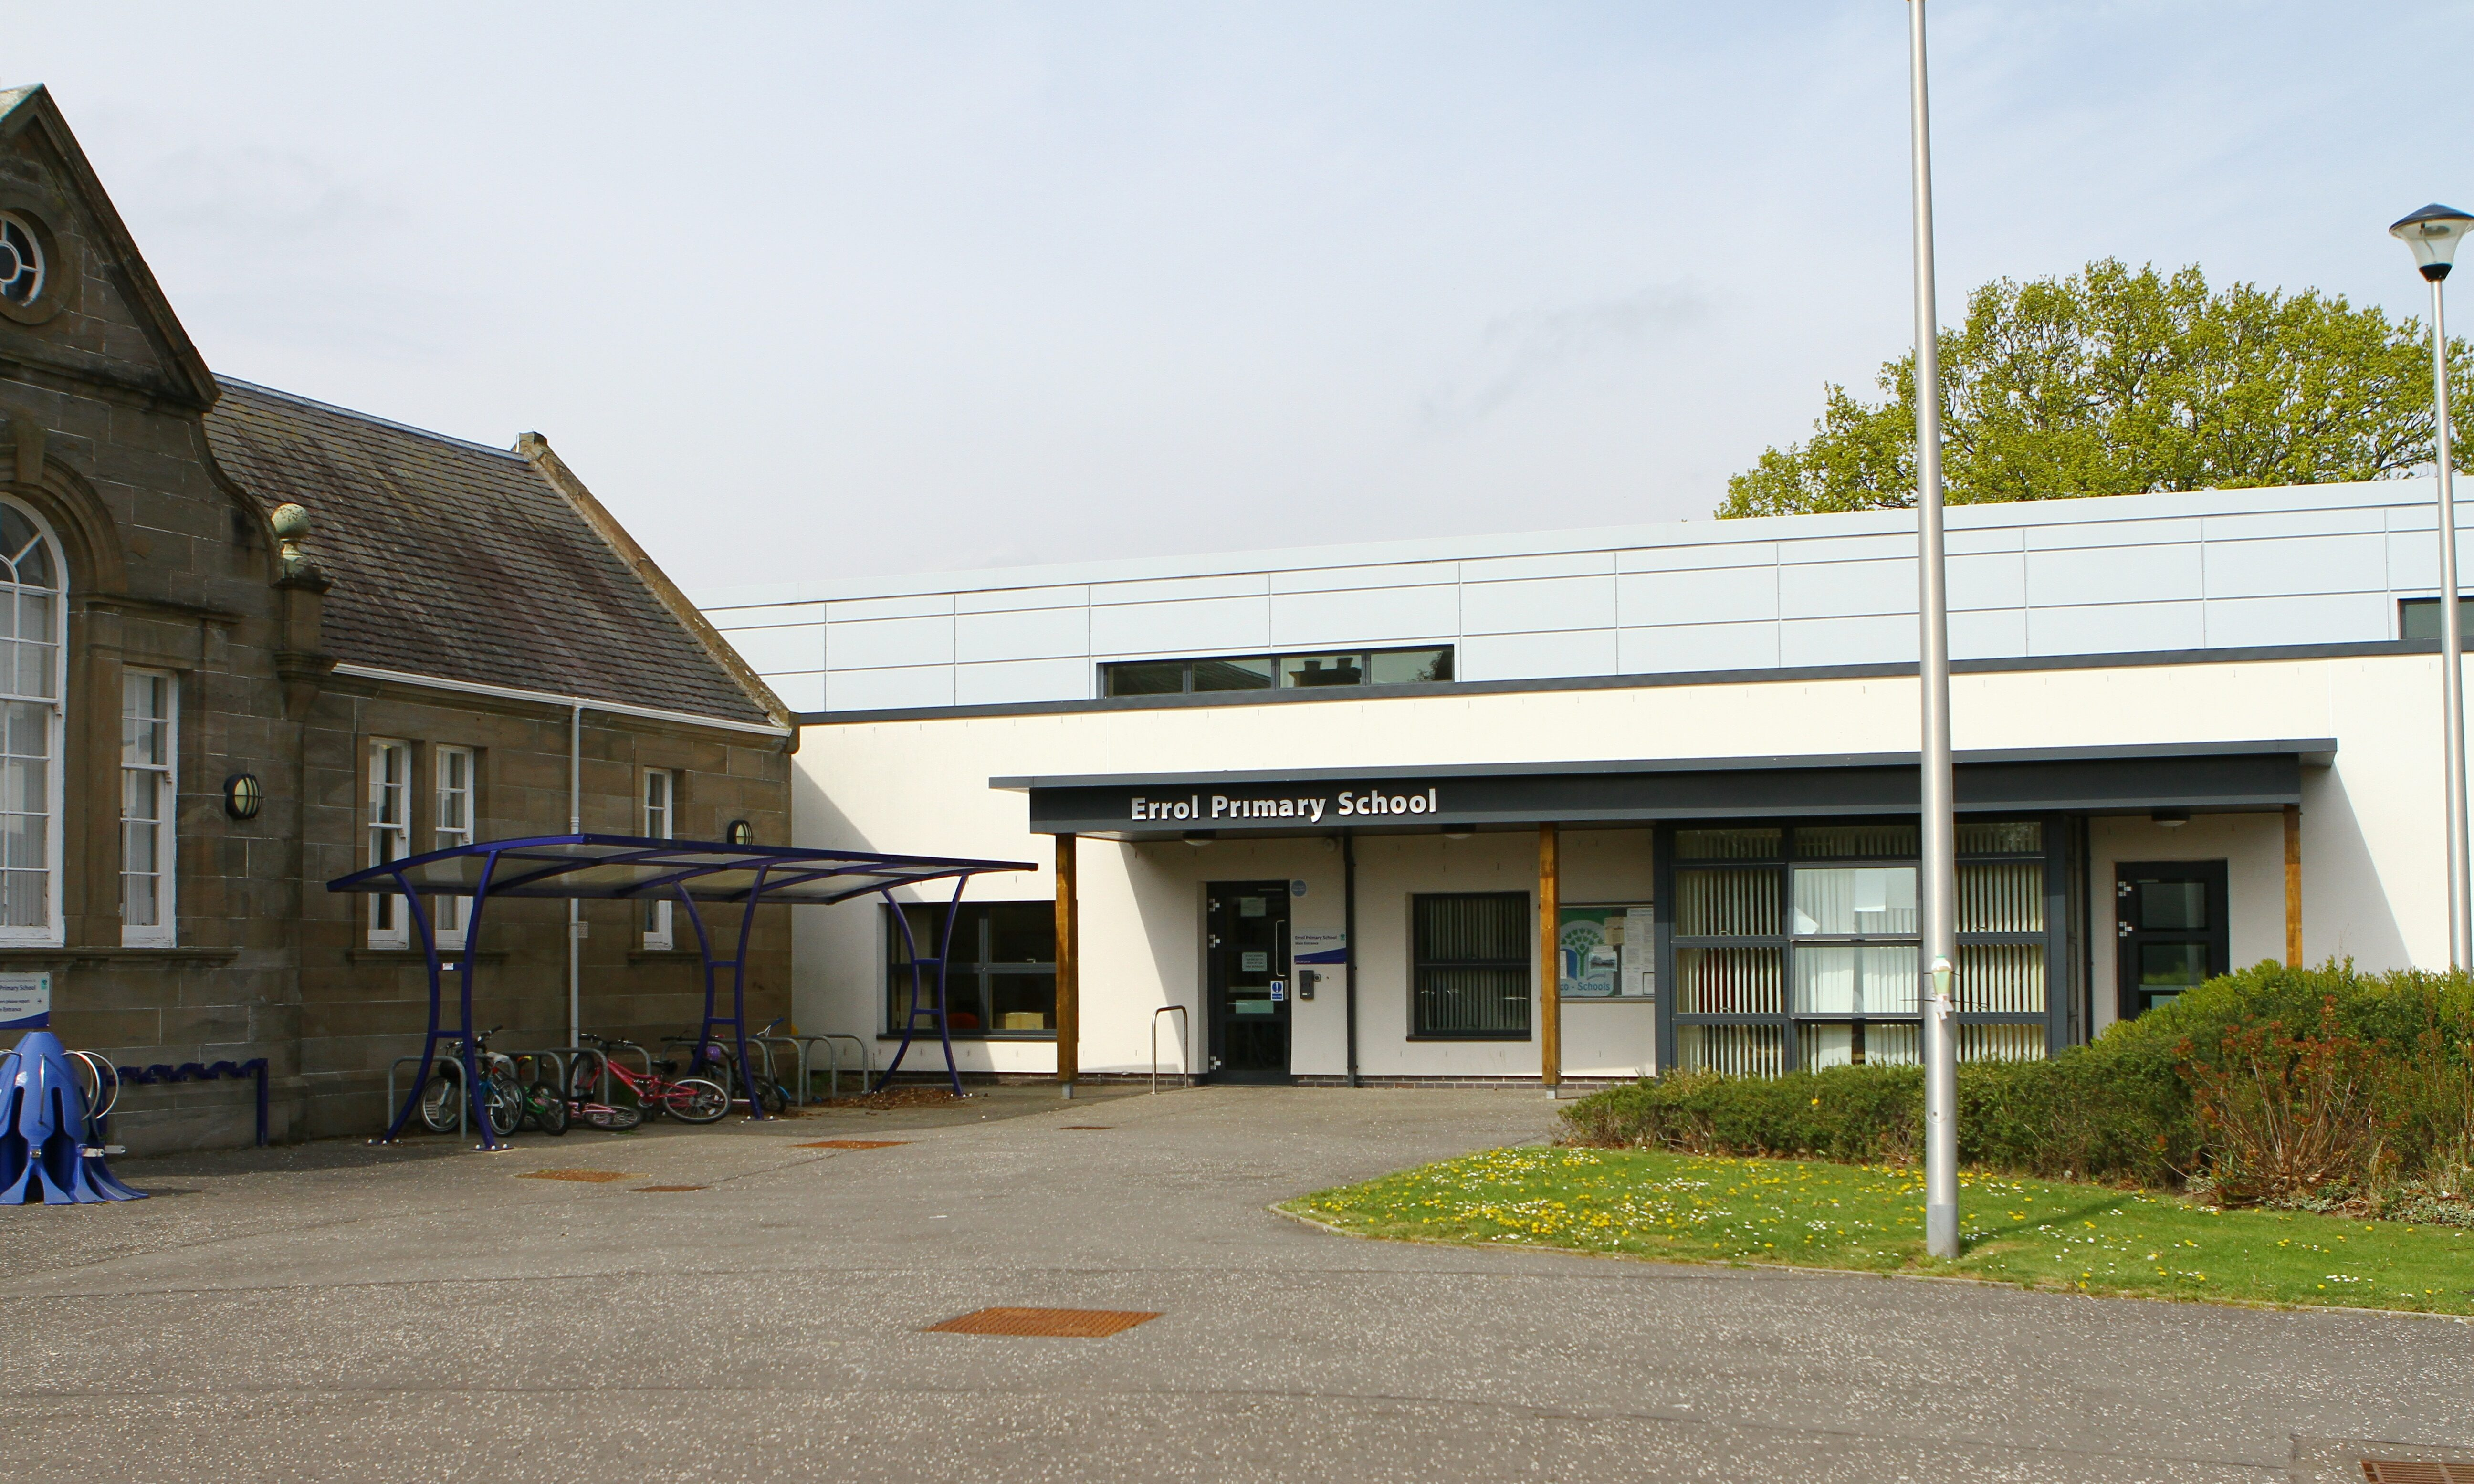 The club is based at Errol Primary school.